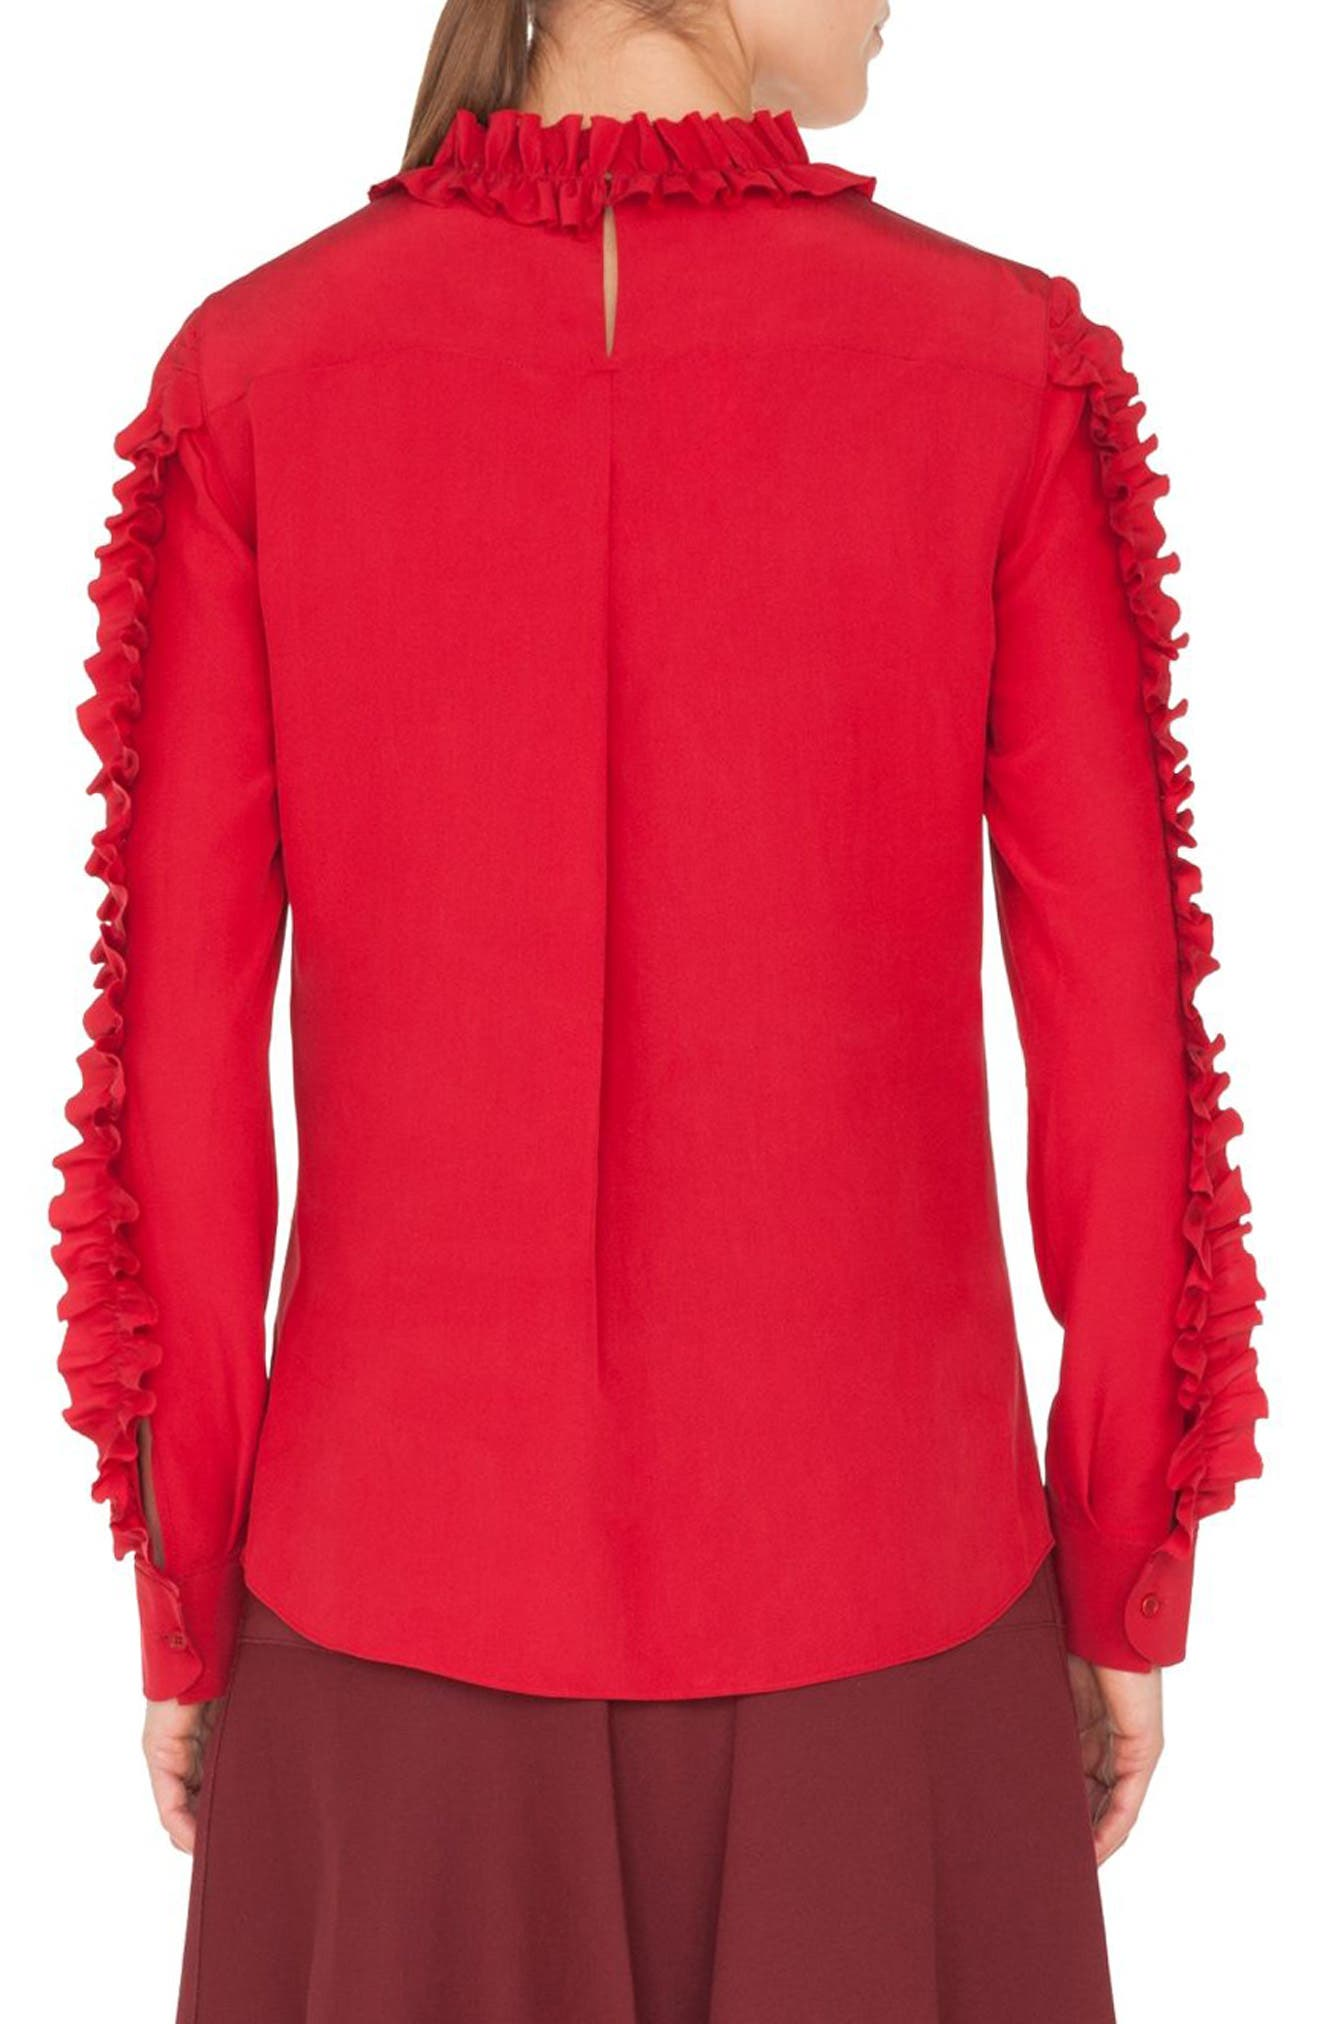 Ruched Silk Blouse,                             Alternate thumbnail 2, color,                             600